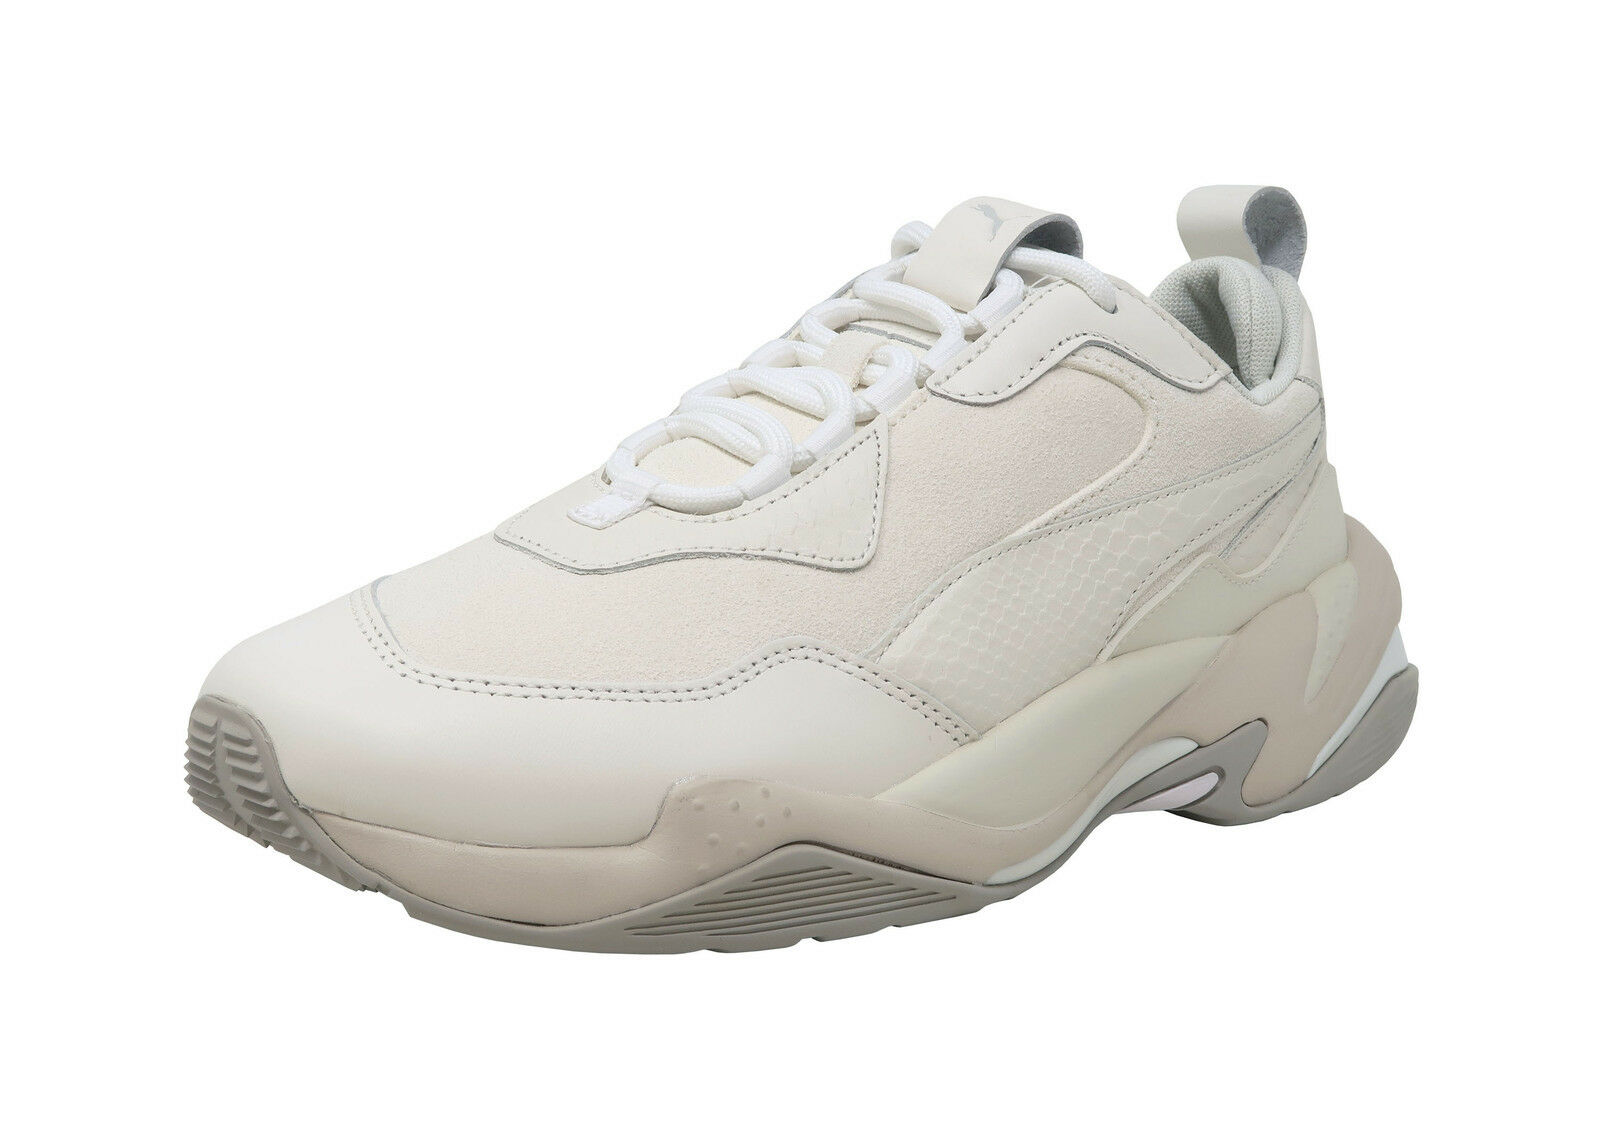 PUMA Thunder Desert White Suede Leather Lace Up Fashion Adult Men Shoes